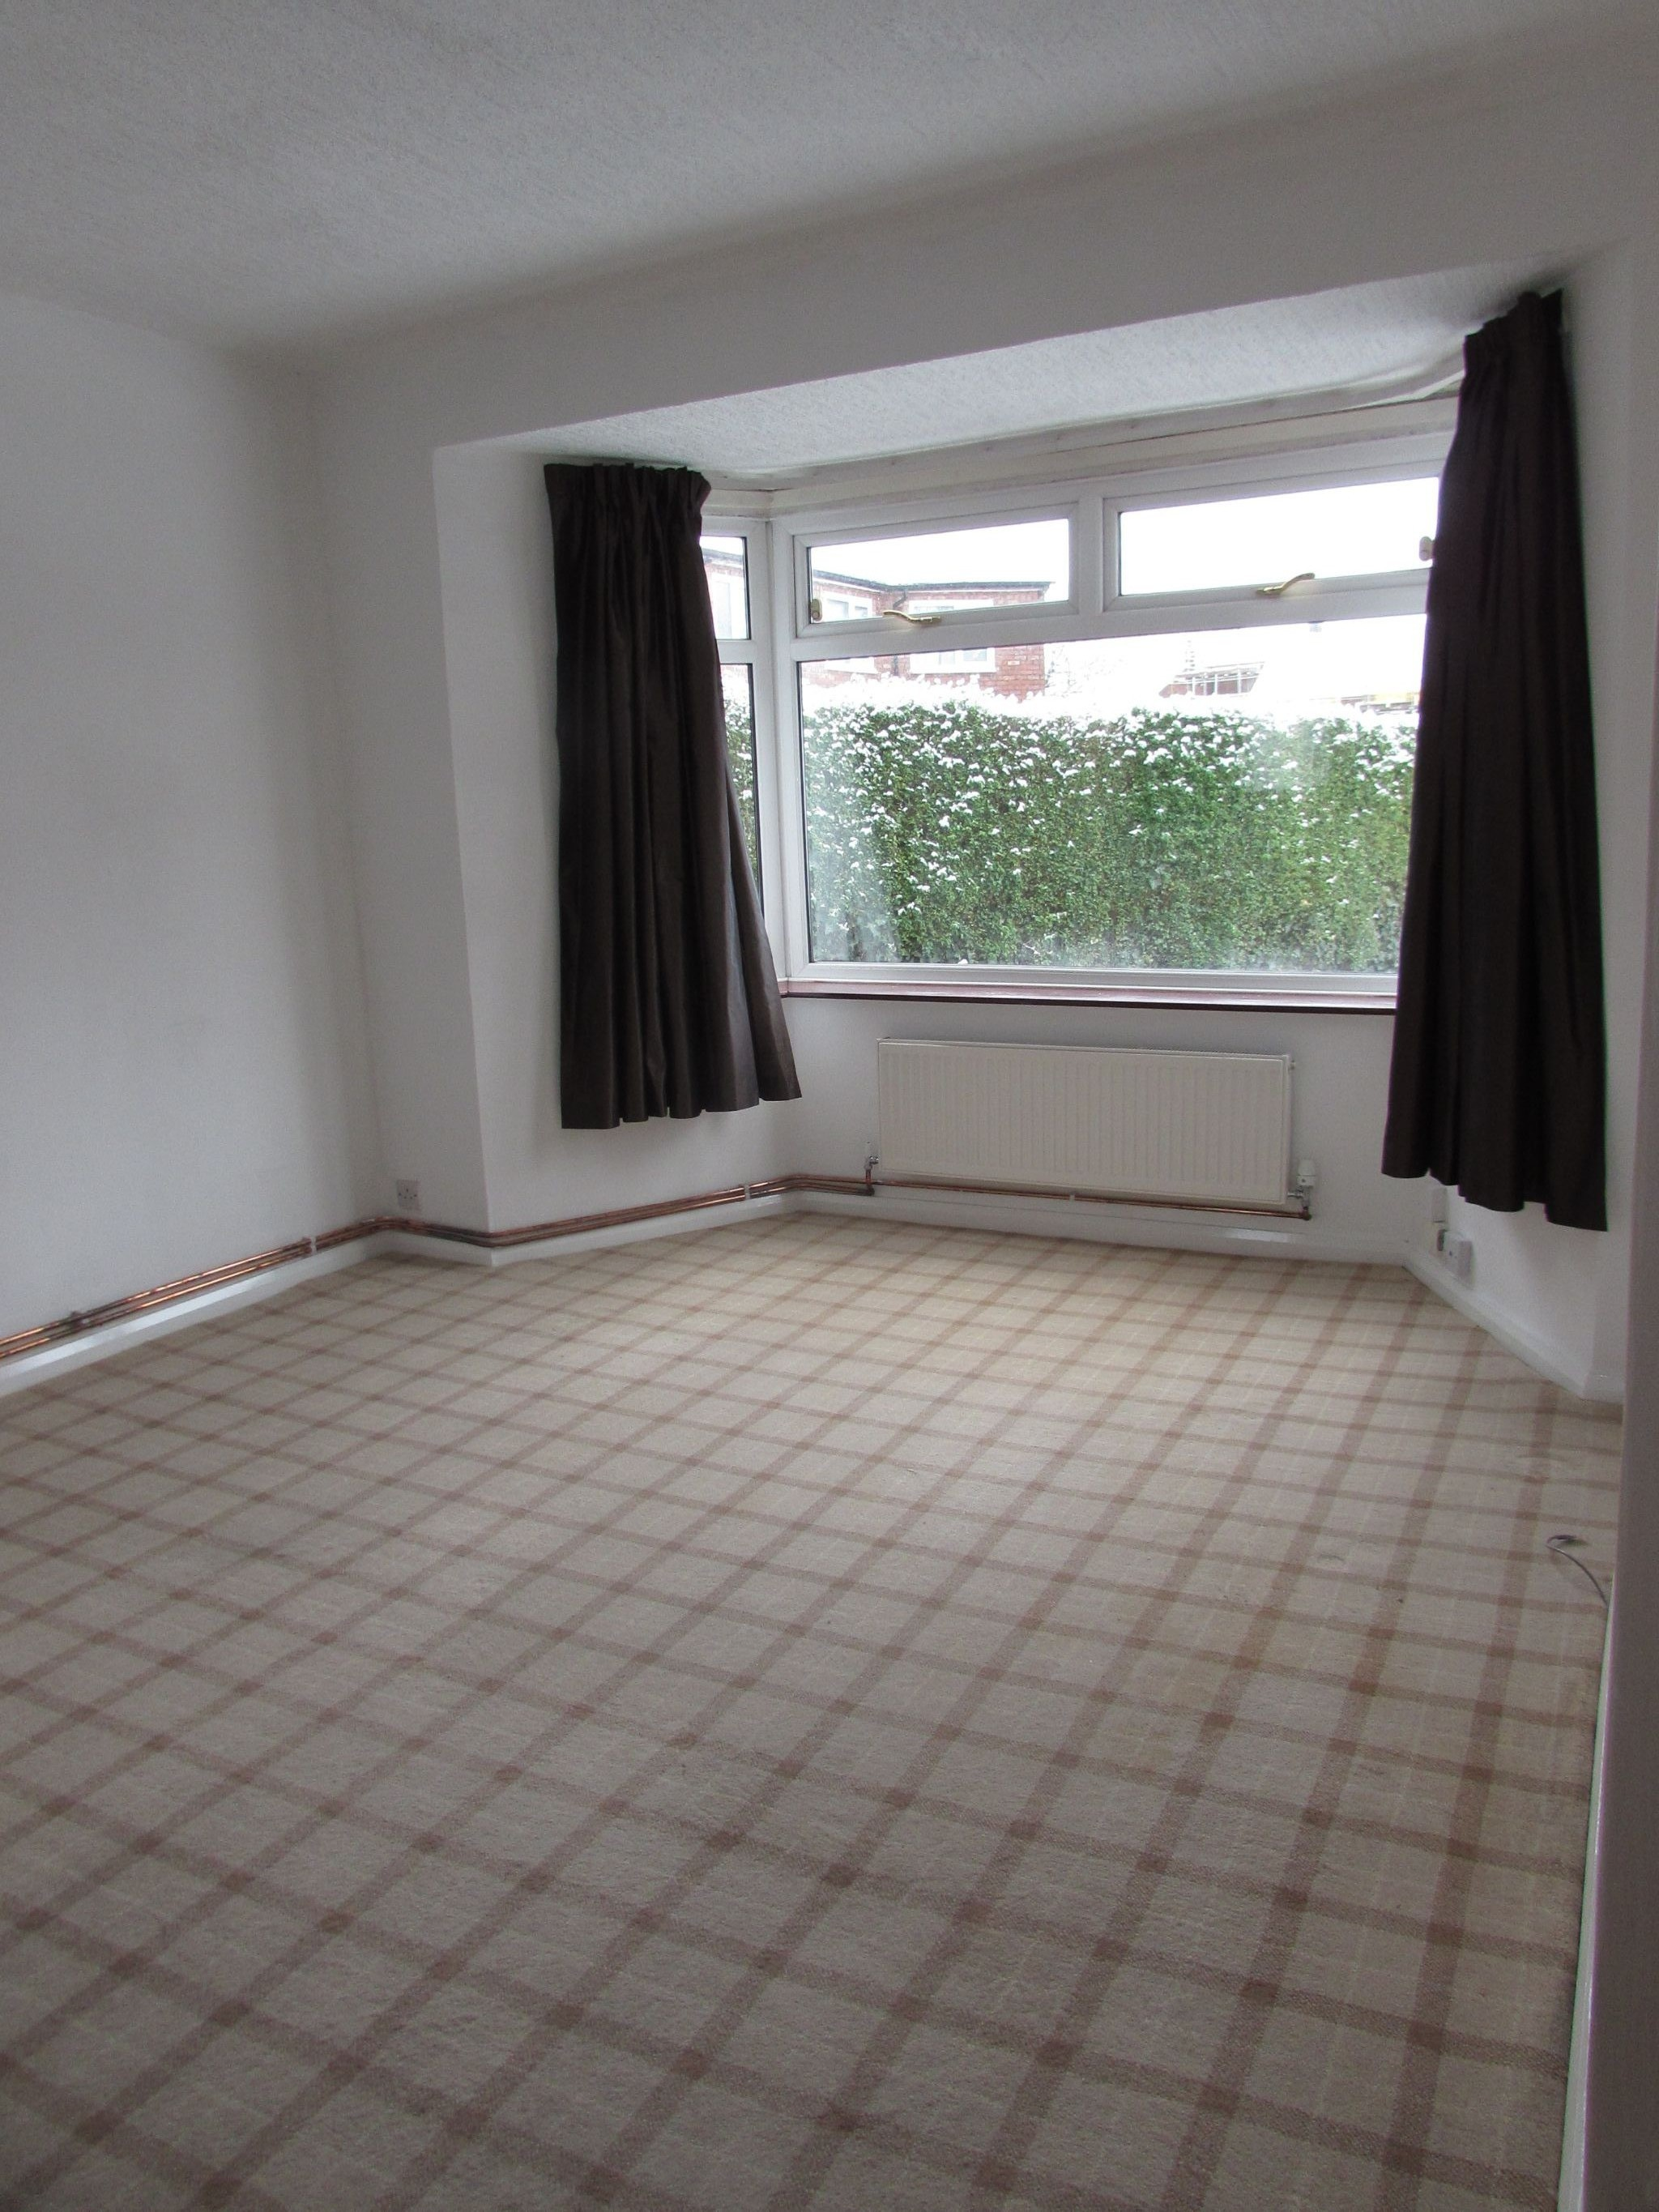 4 Bedroom End Terraced House To Rent - Living Room